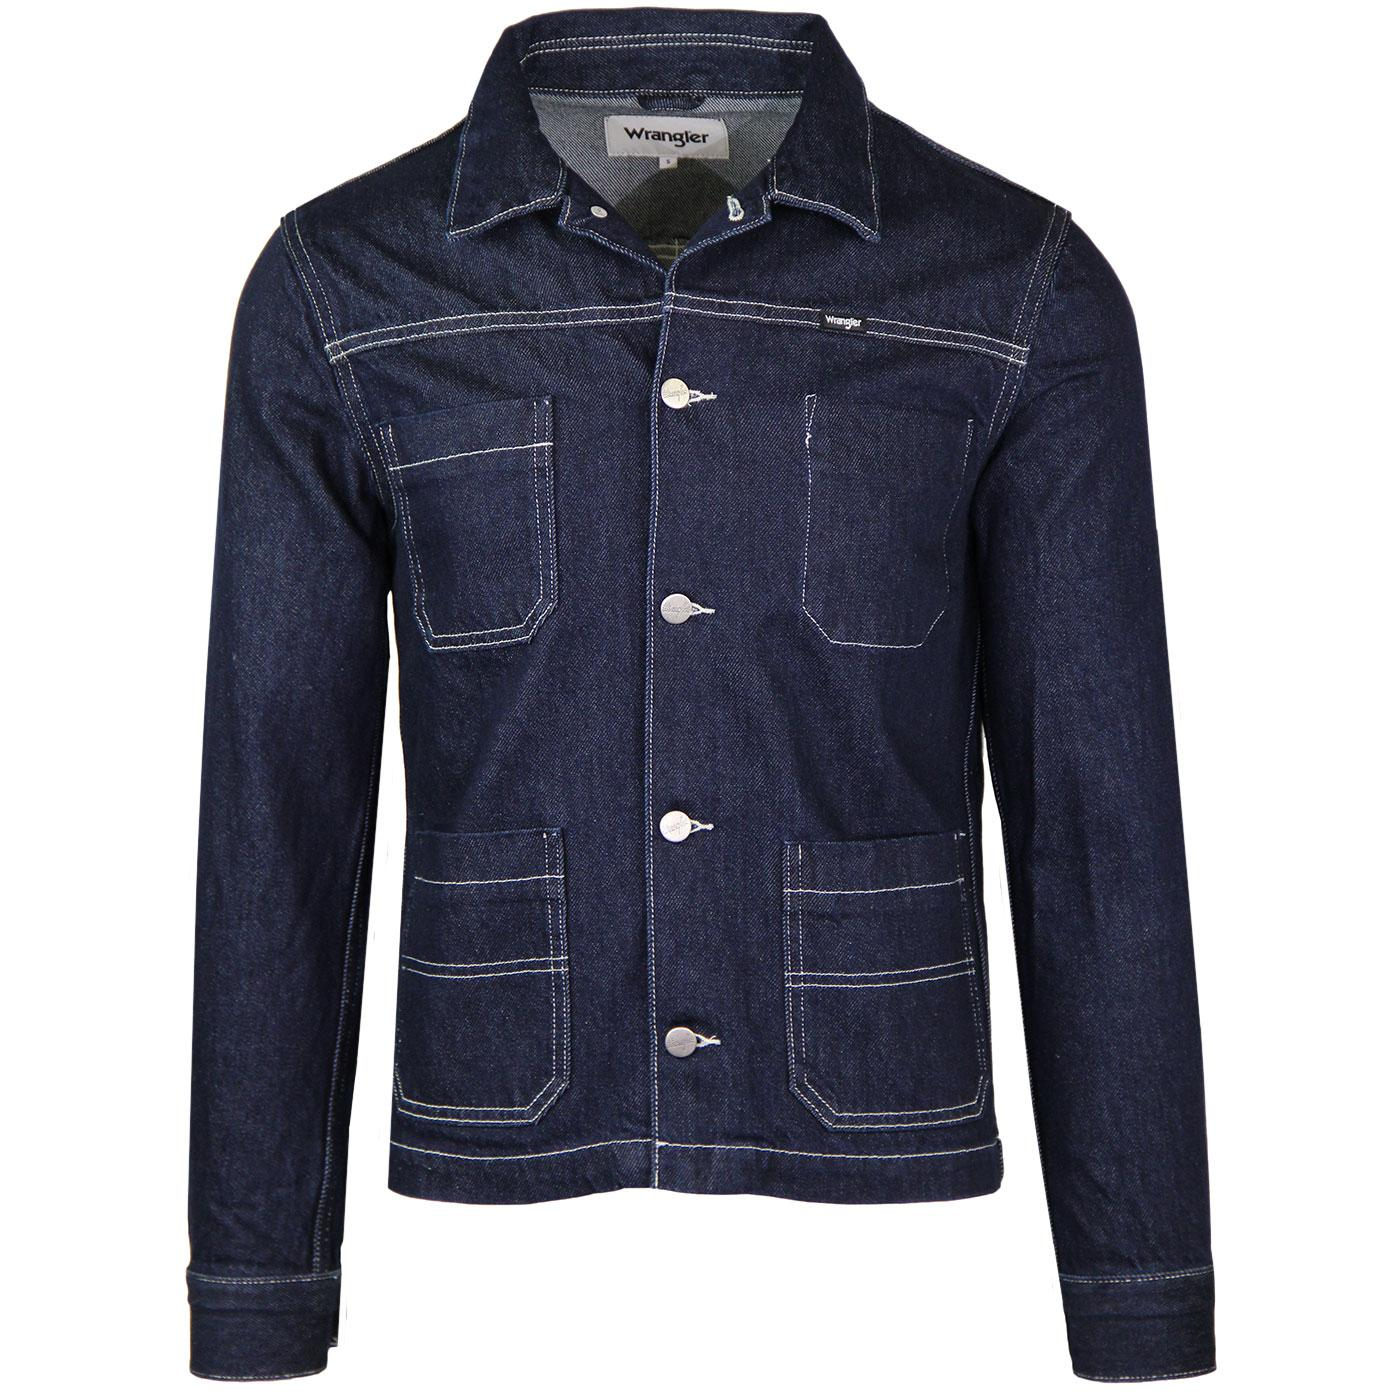 WRANGLER Retro Mod Denim Carpenter Jacket RAW EDGE